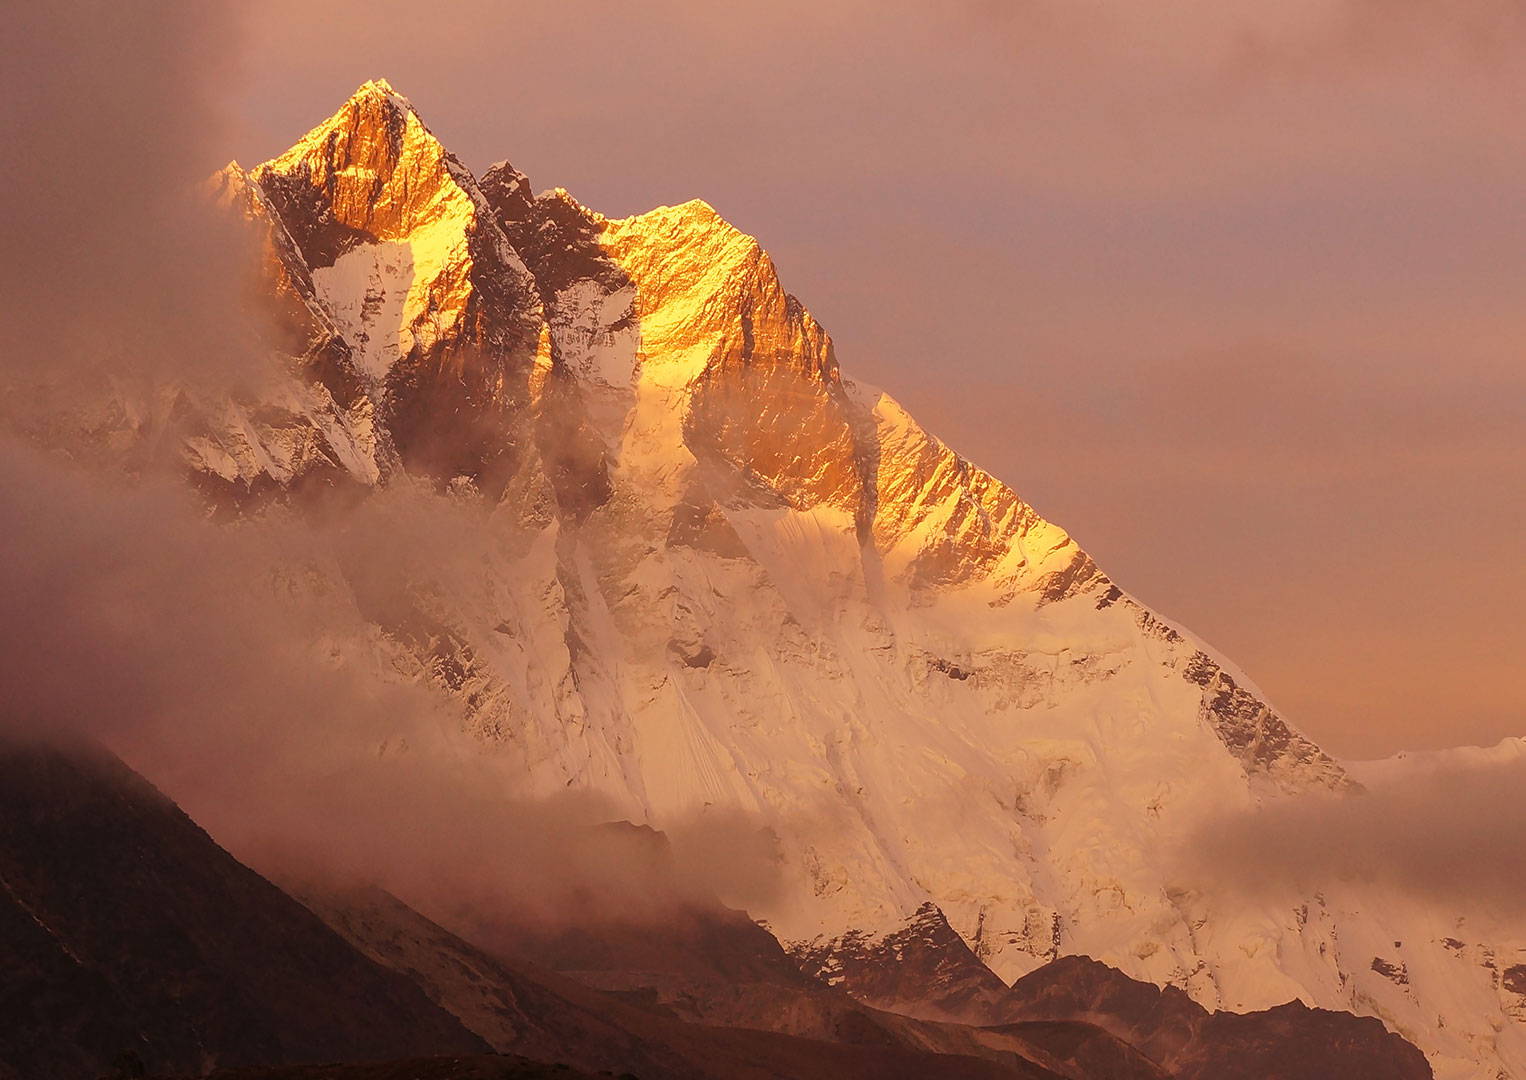 The majestic Mount Everest, but which watch brand got to its summit first?